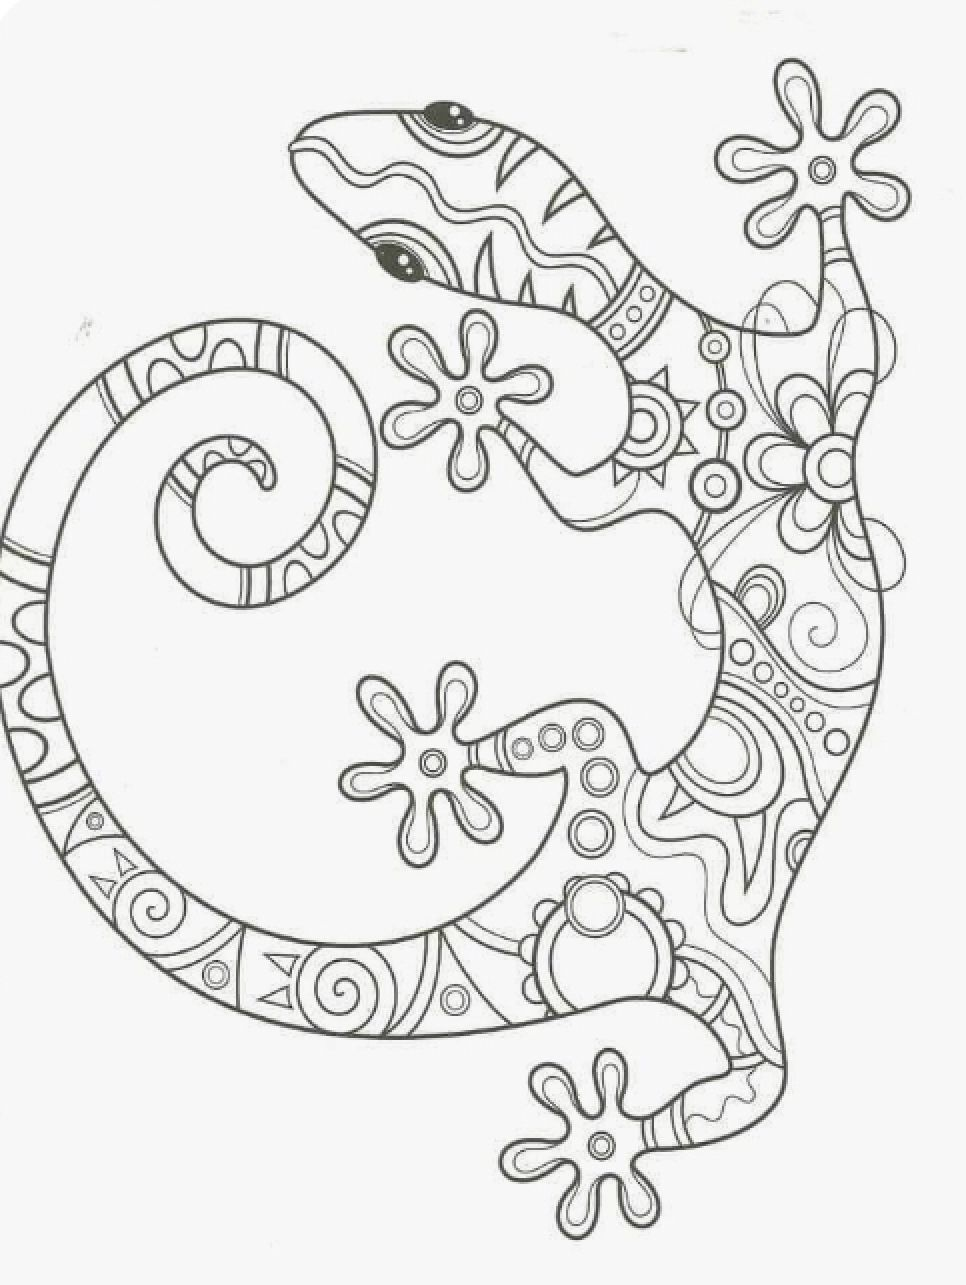 Gecko Mandala Coloring Pages Animal Coloring Pages Detailed Coloring Pages